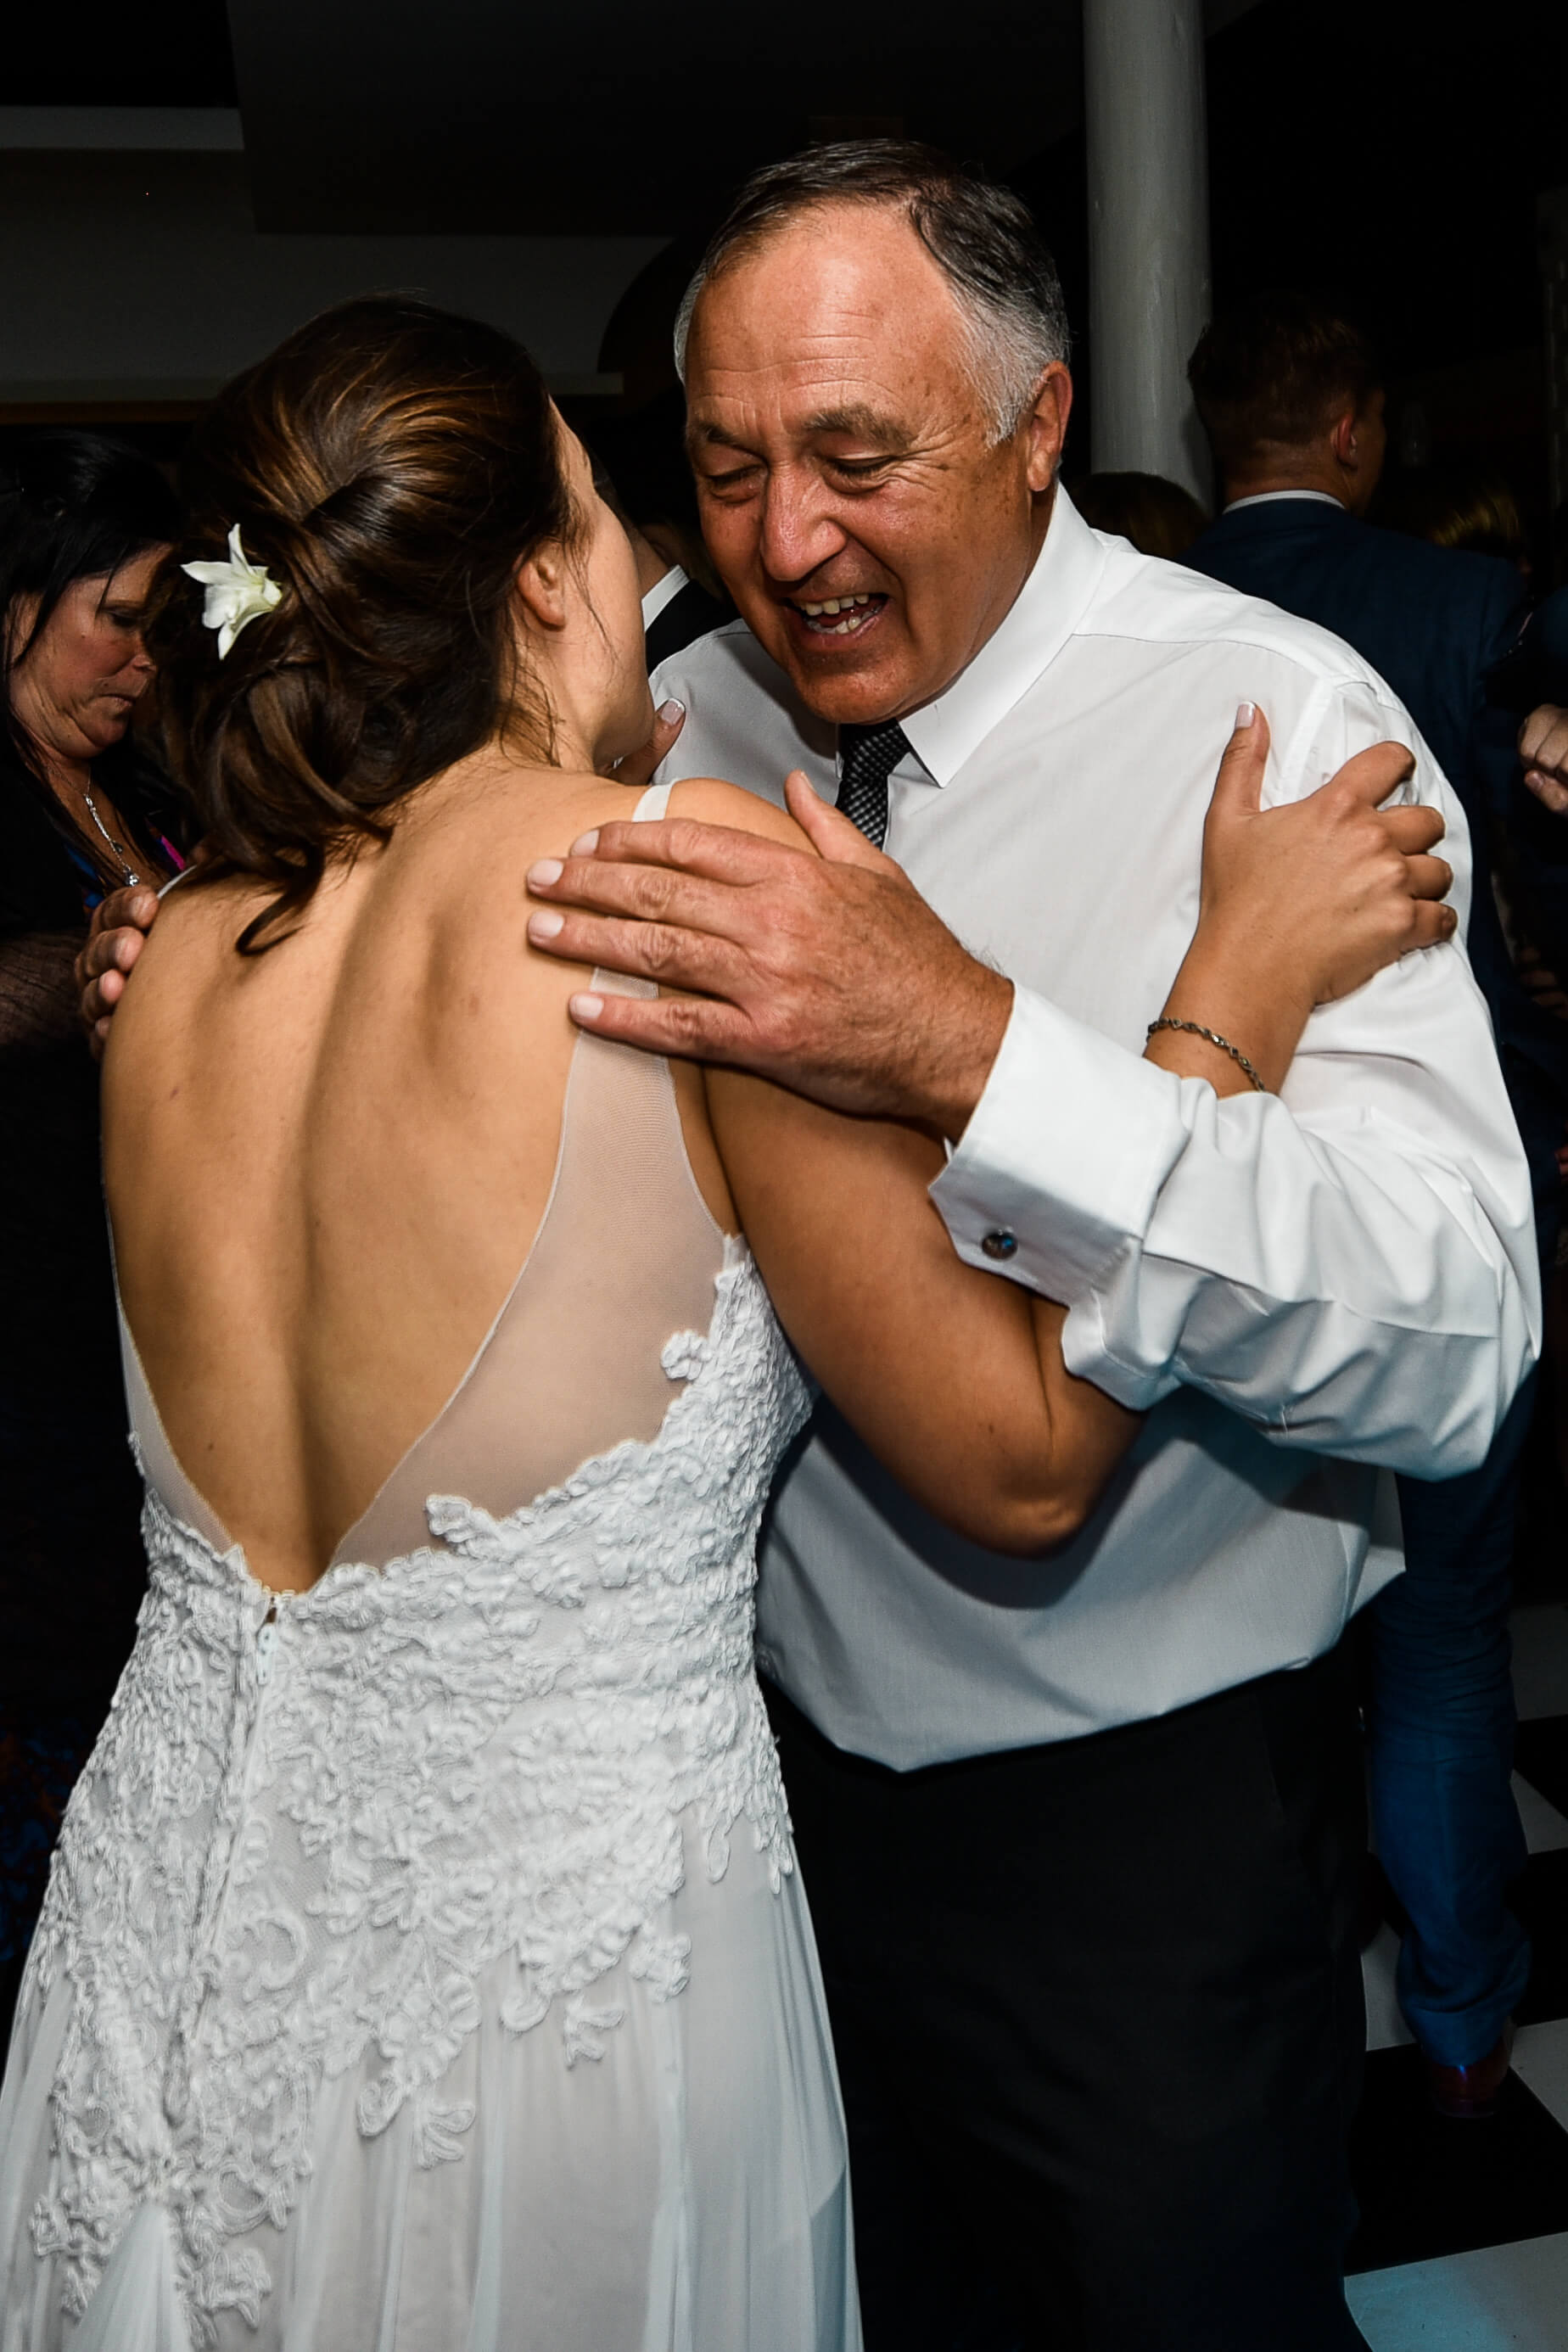 A bride and her dad dancing at her wedding in Plett.